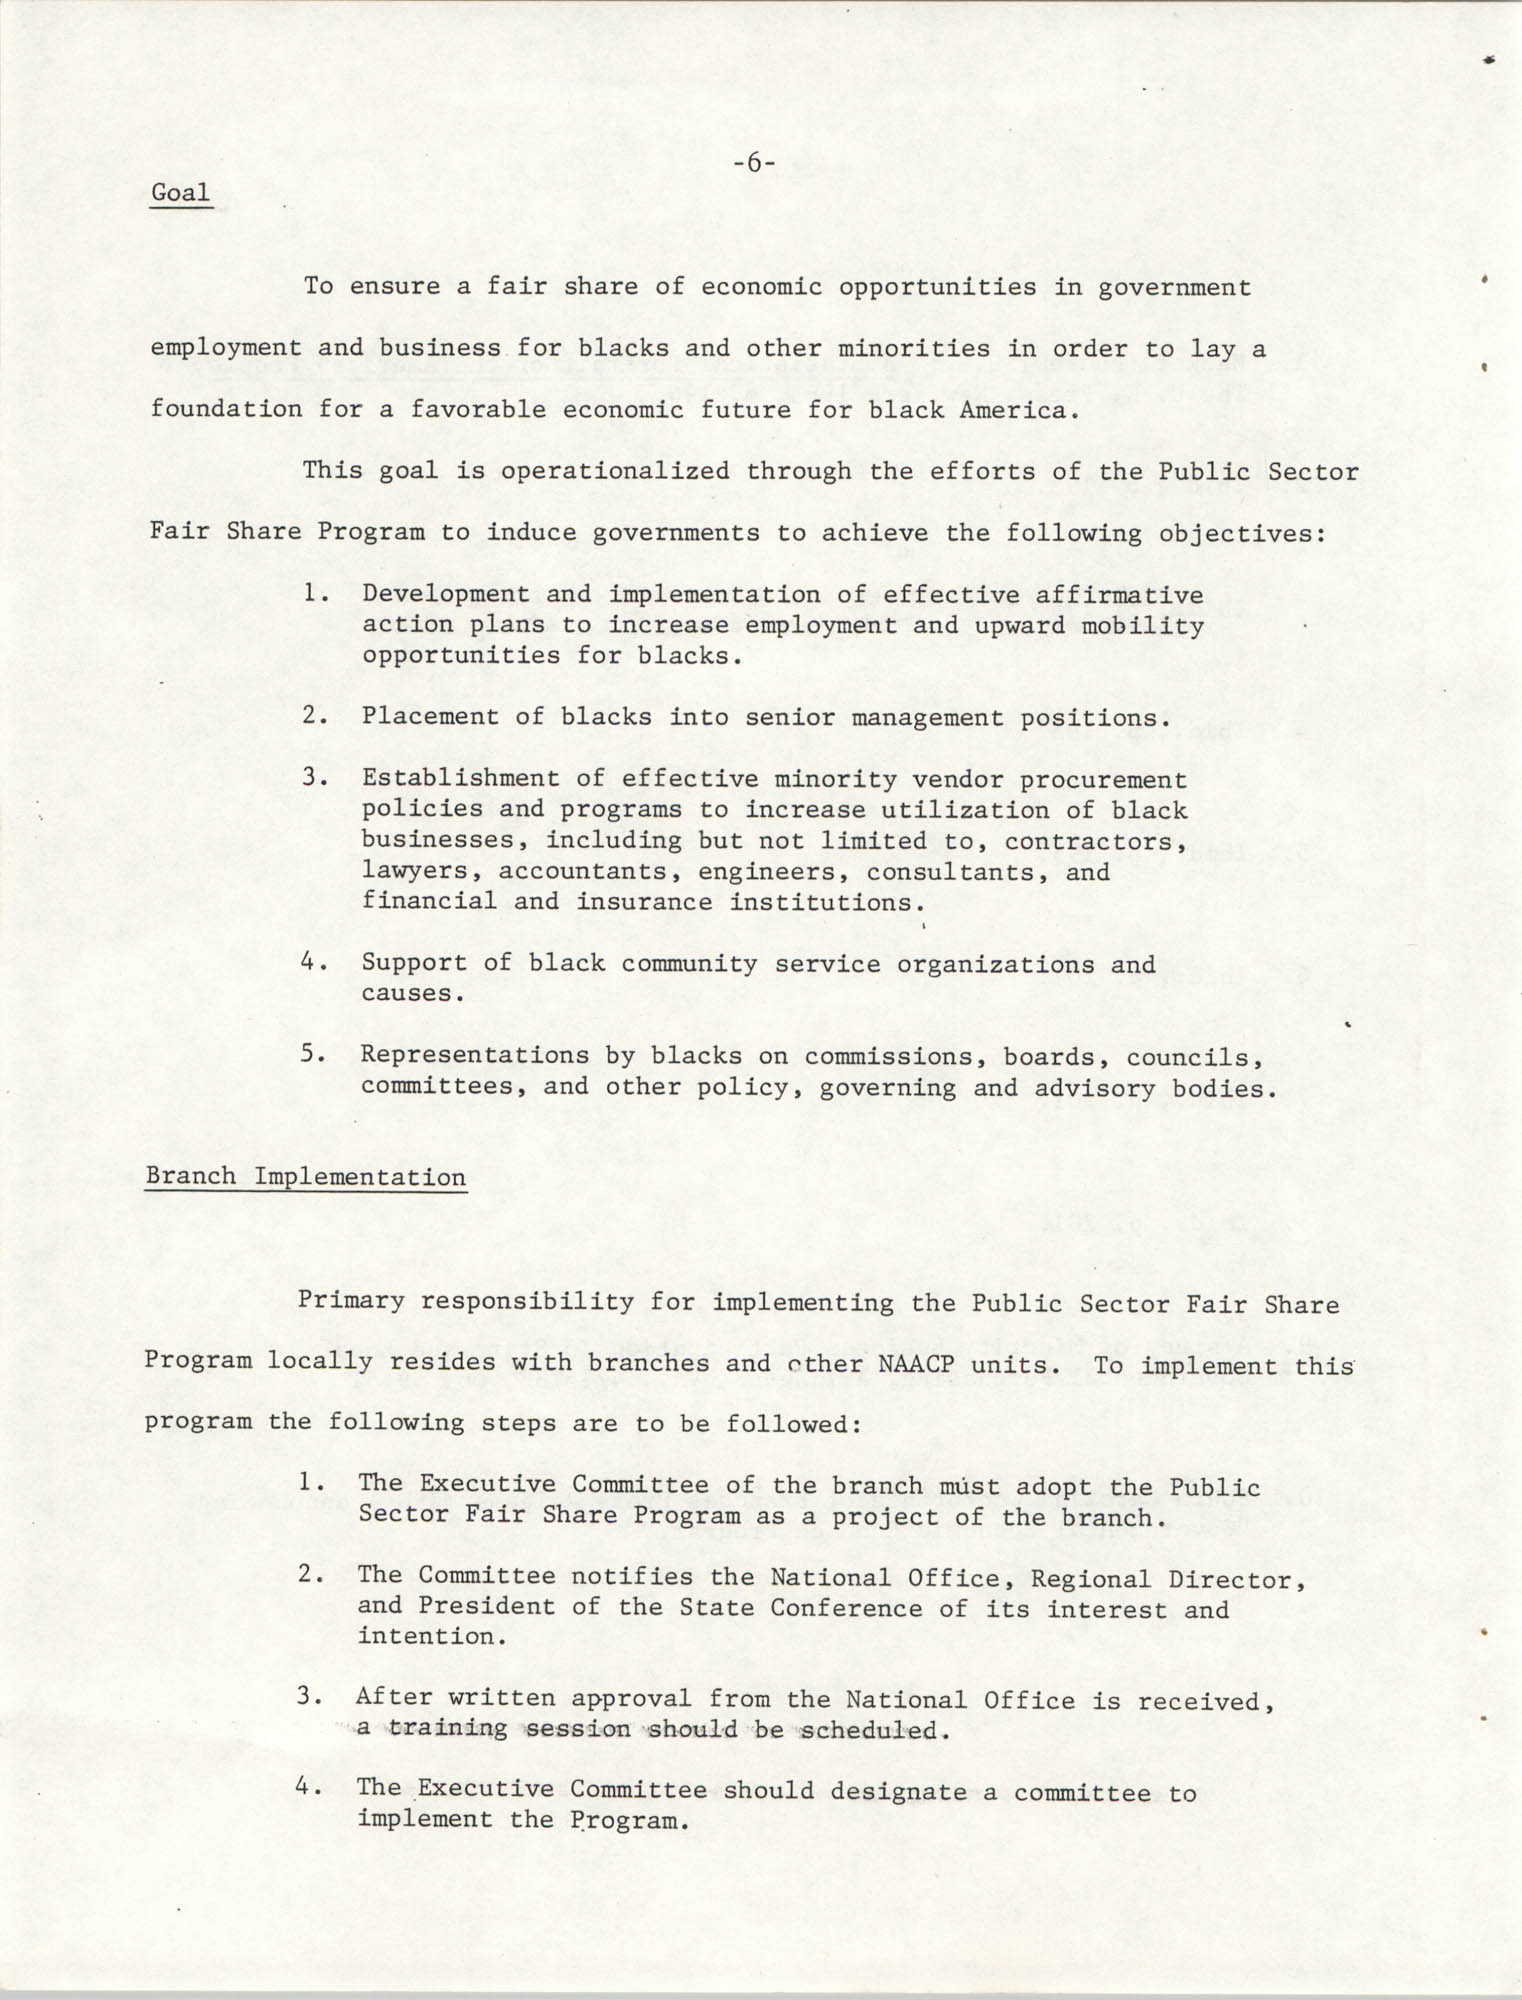 Governmental Fair Share Workshop for South Carolina Conference of Branches, October 11, 1985, Page 6